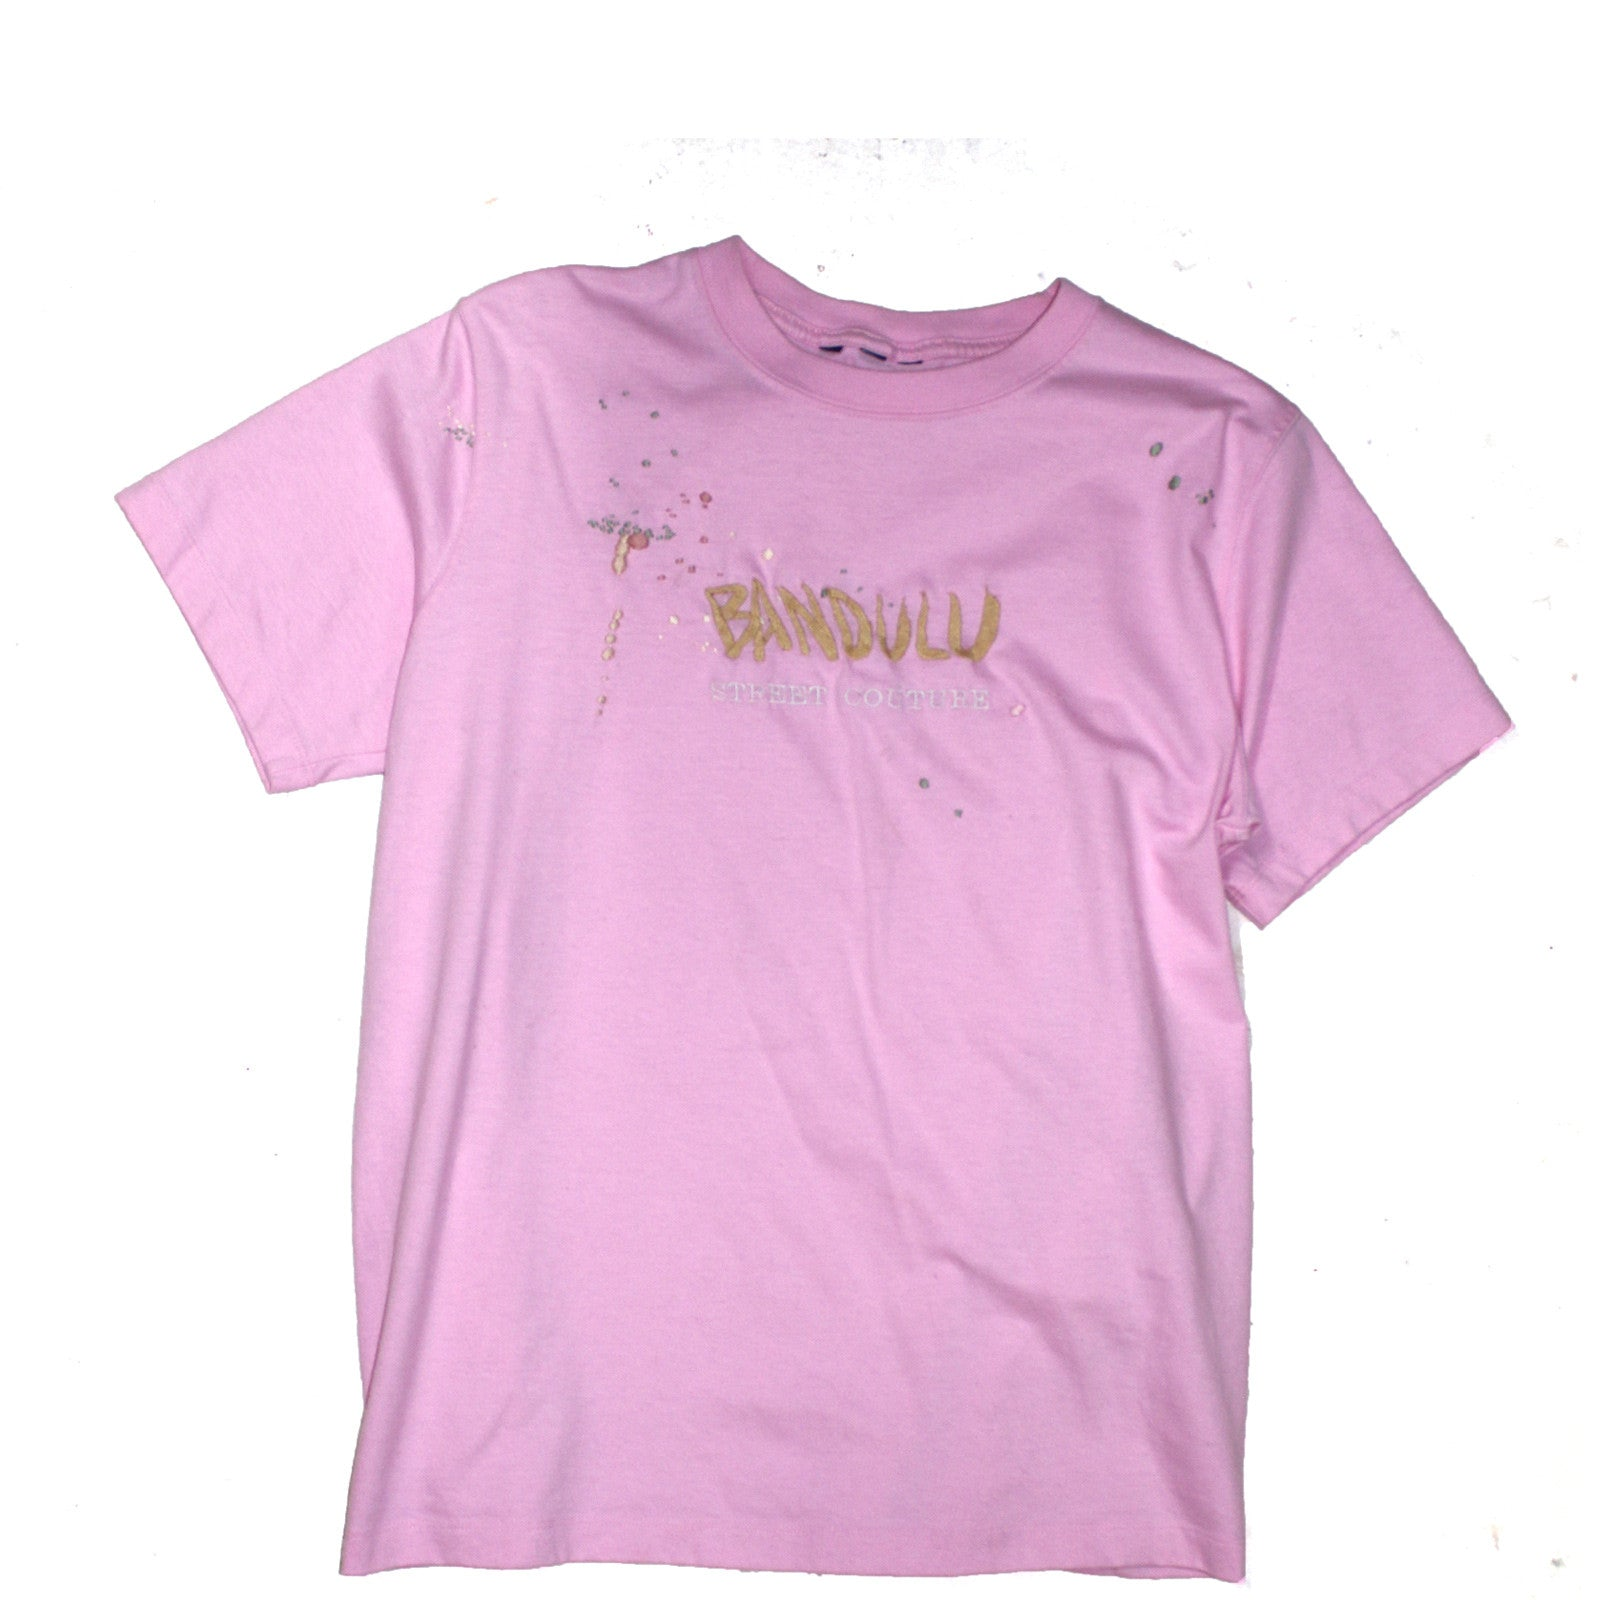 "BANDULU ""SOFTY IN SOUTH SHORE"" VINTAGE TEE"